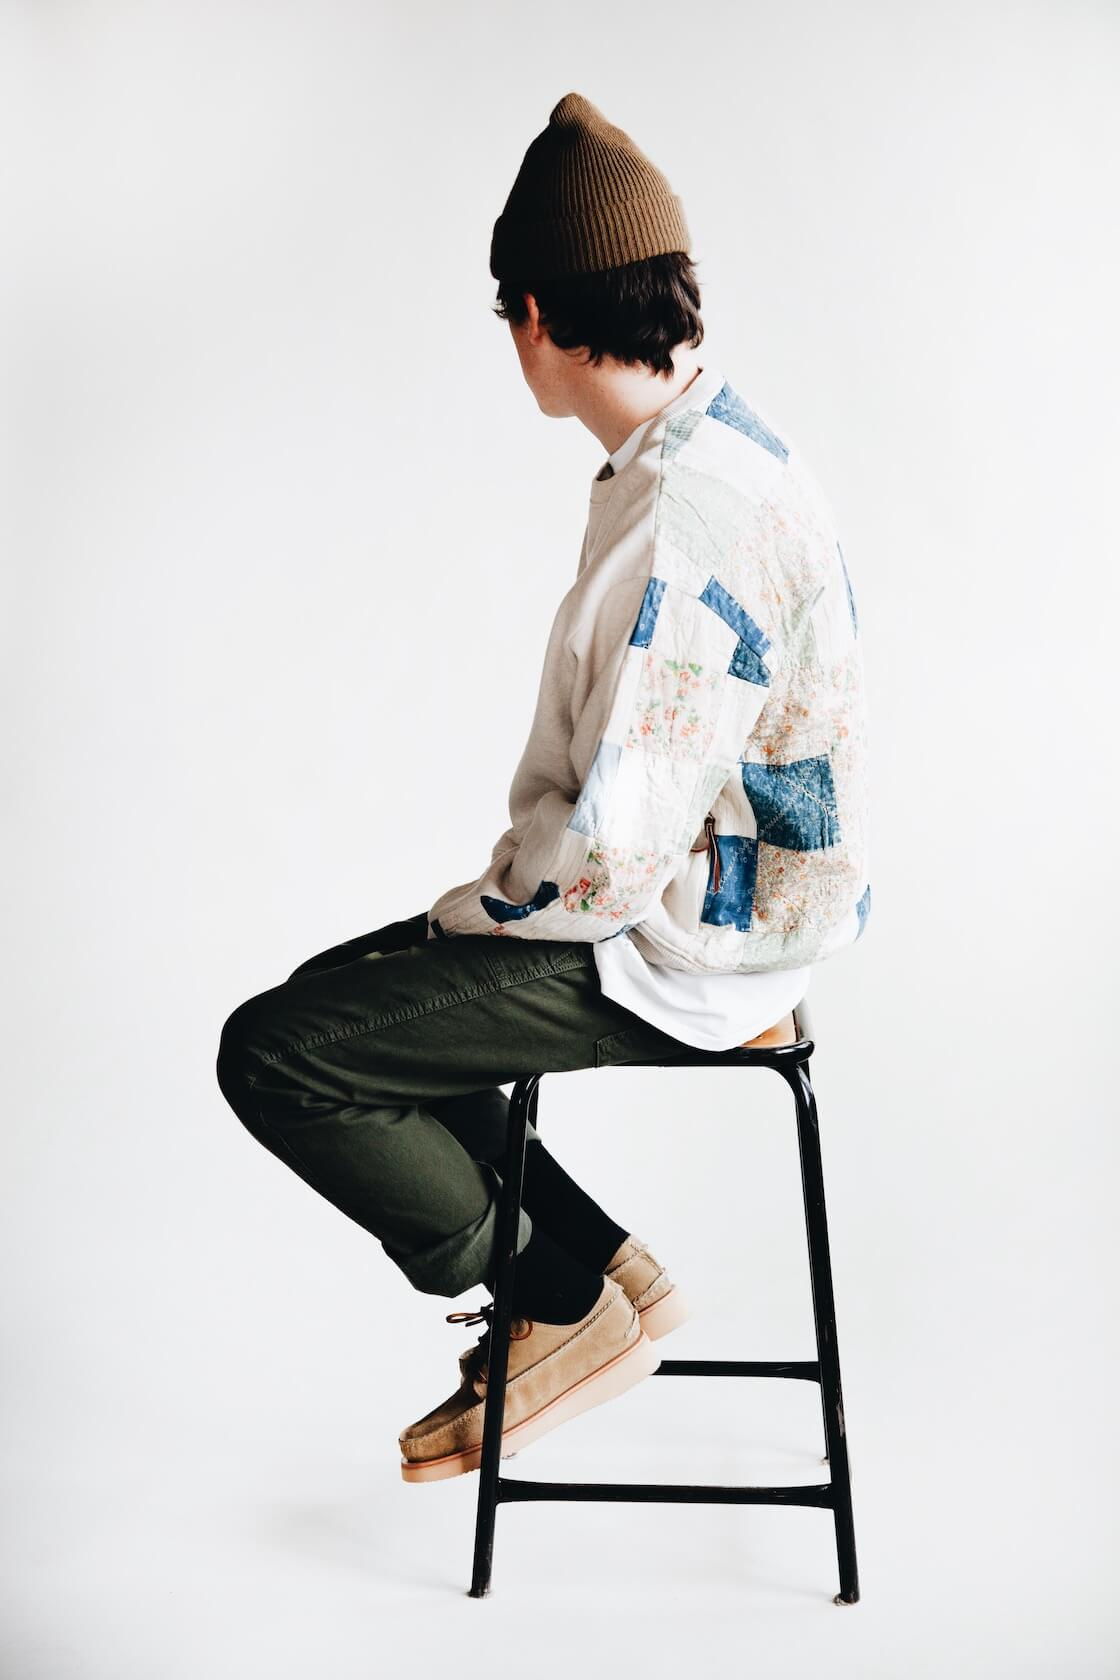 kapital kountry fleecy knit x american quilt country 2 tones big sweatshirt and pure blue japan military pants on body